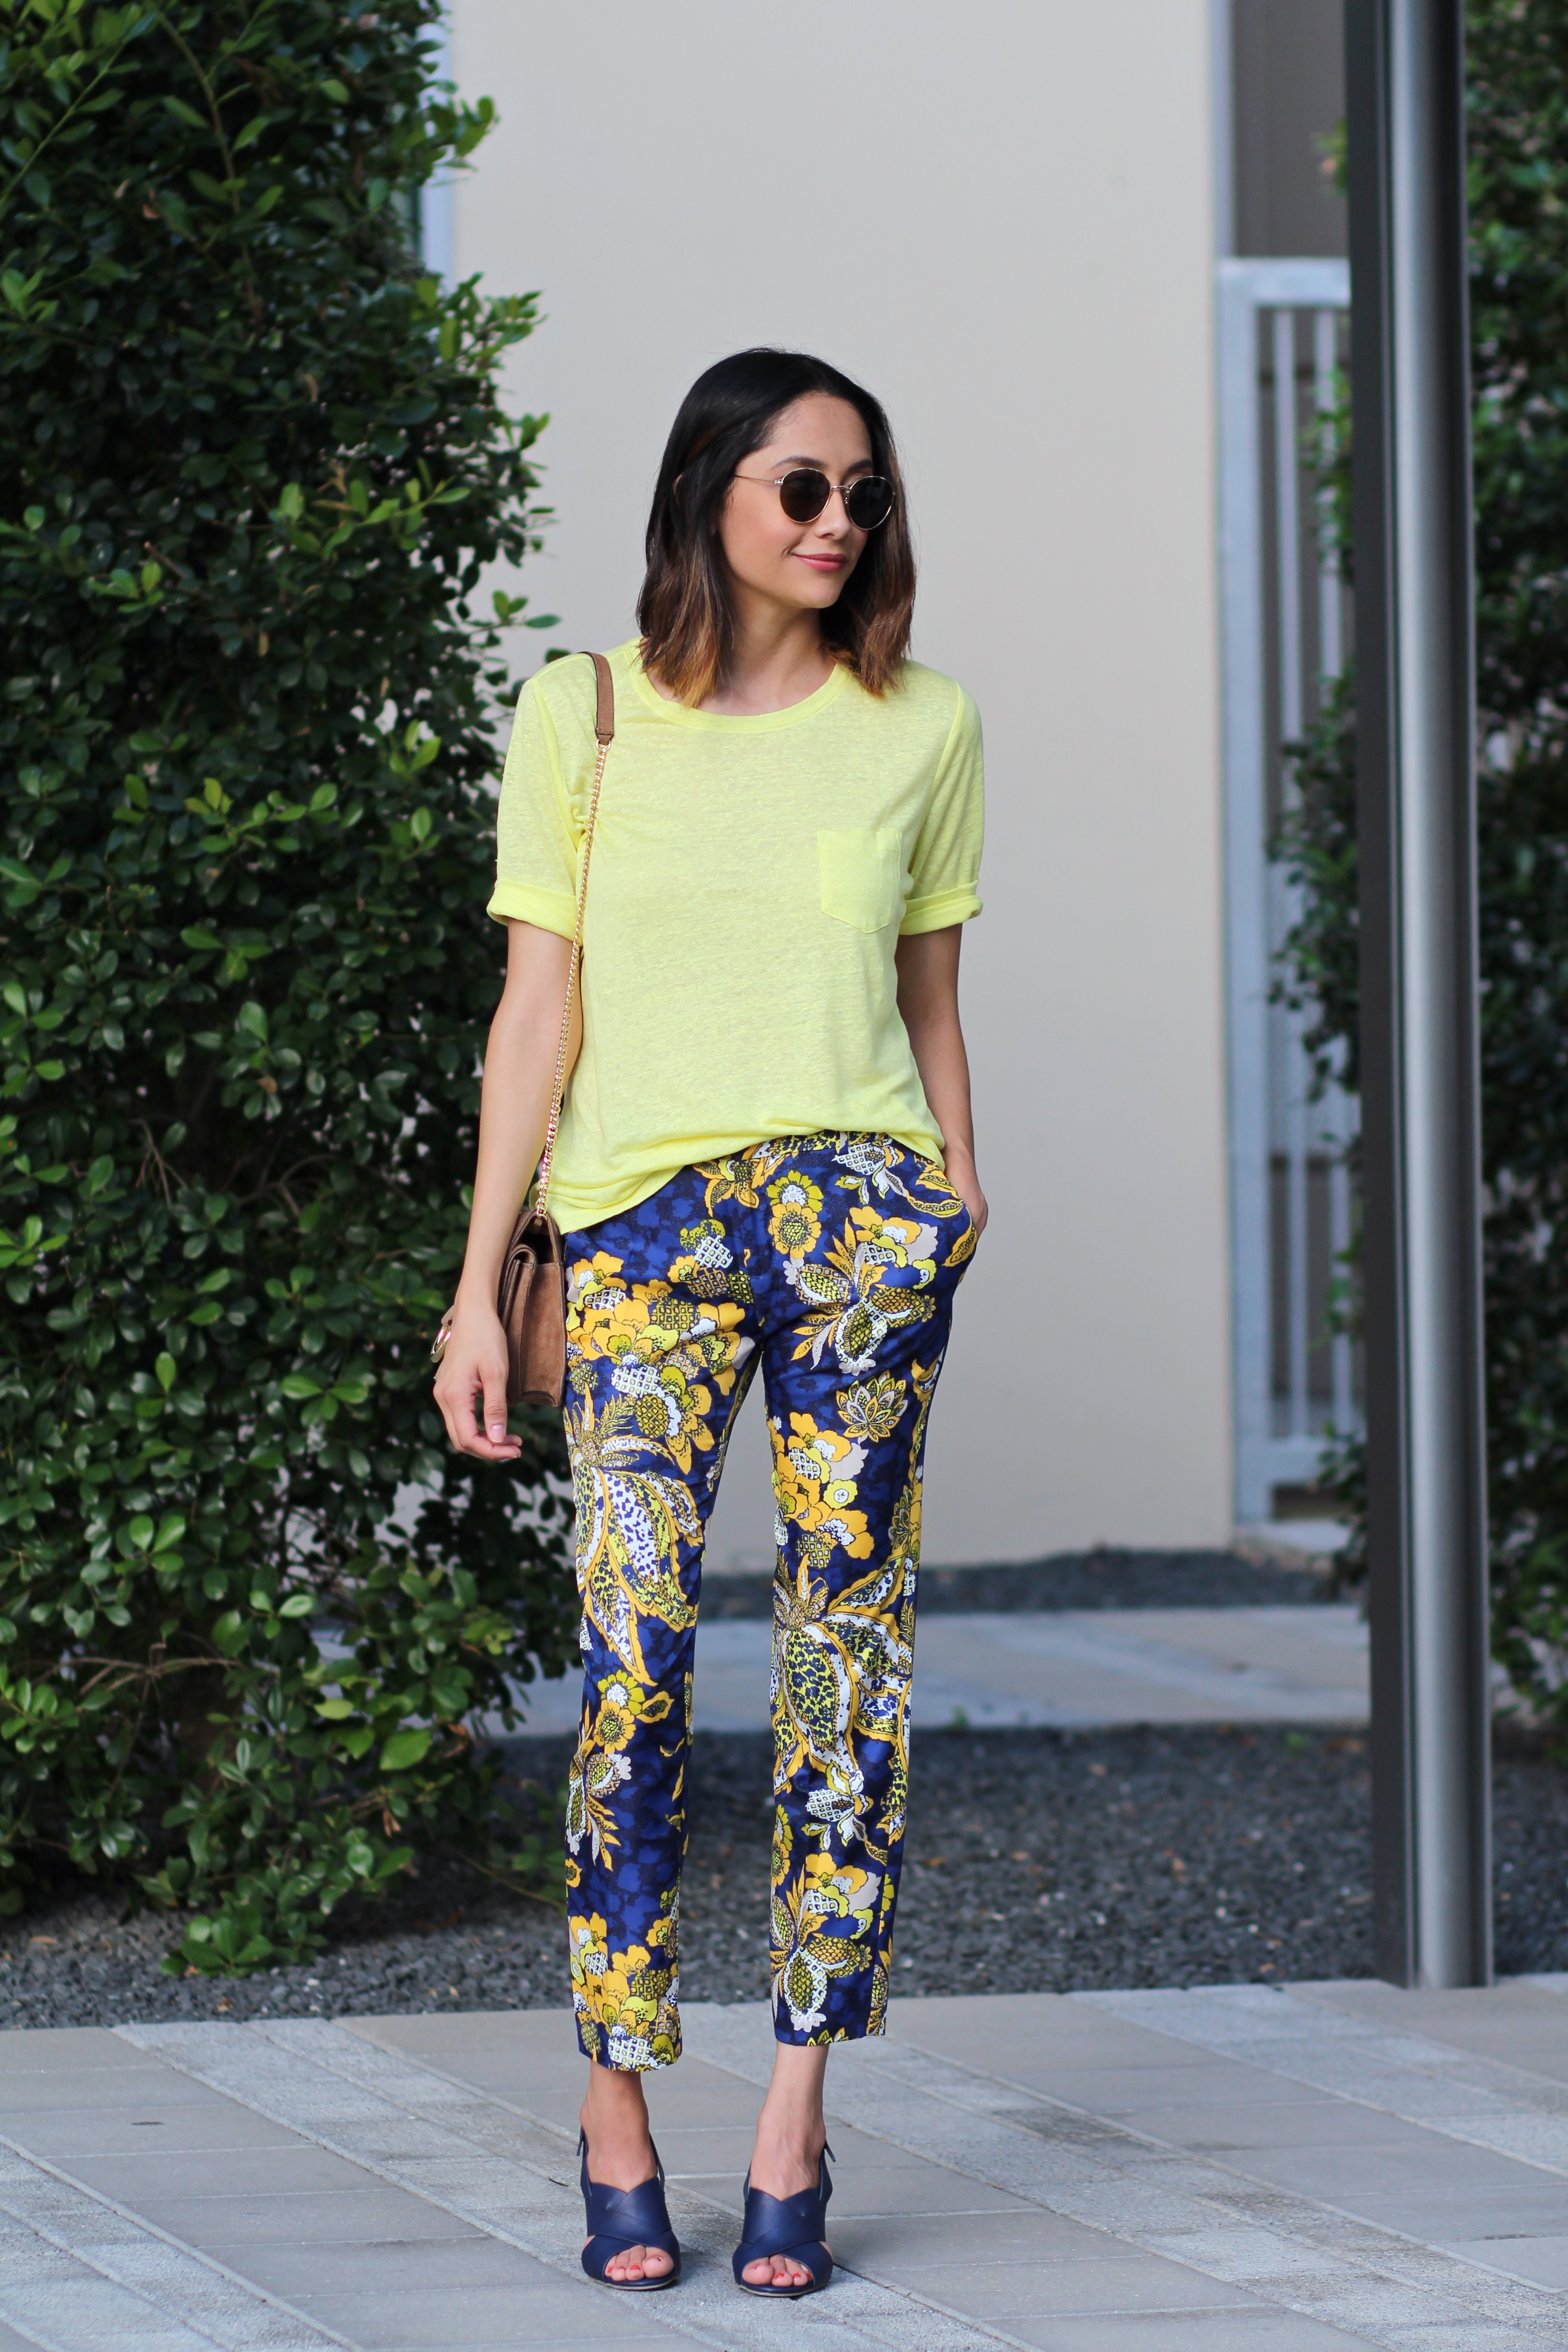 Fashion blogger Lilly Beltran of Daily Craving in floral printed Banana Republic pants and navy block heel sandals